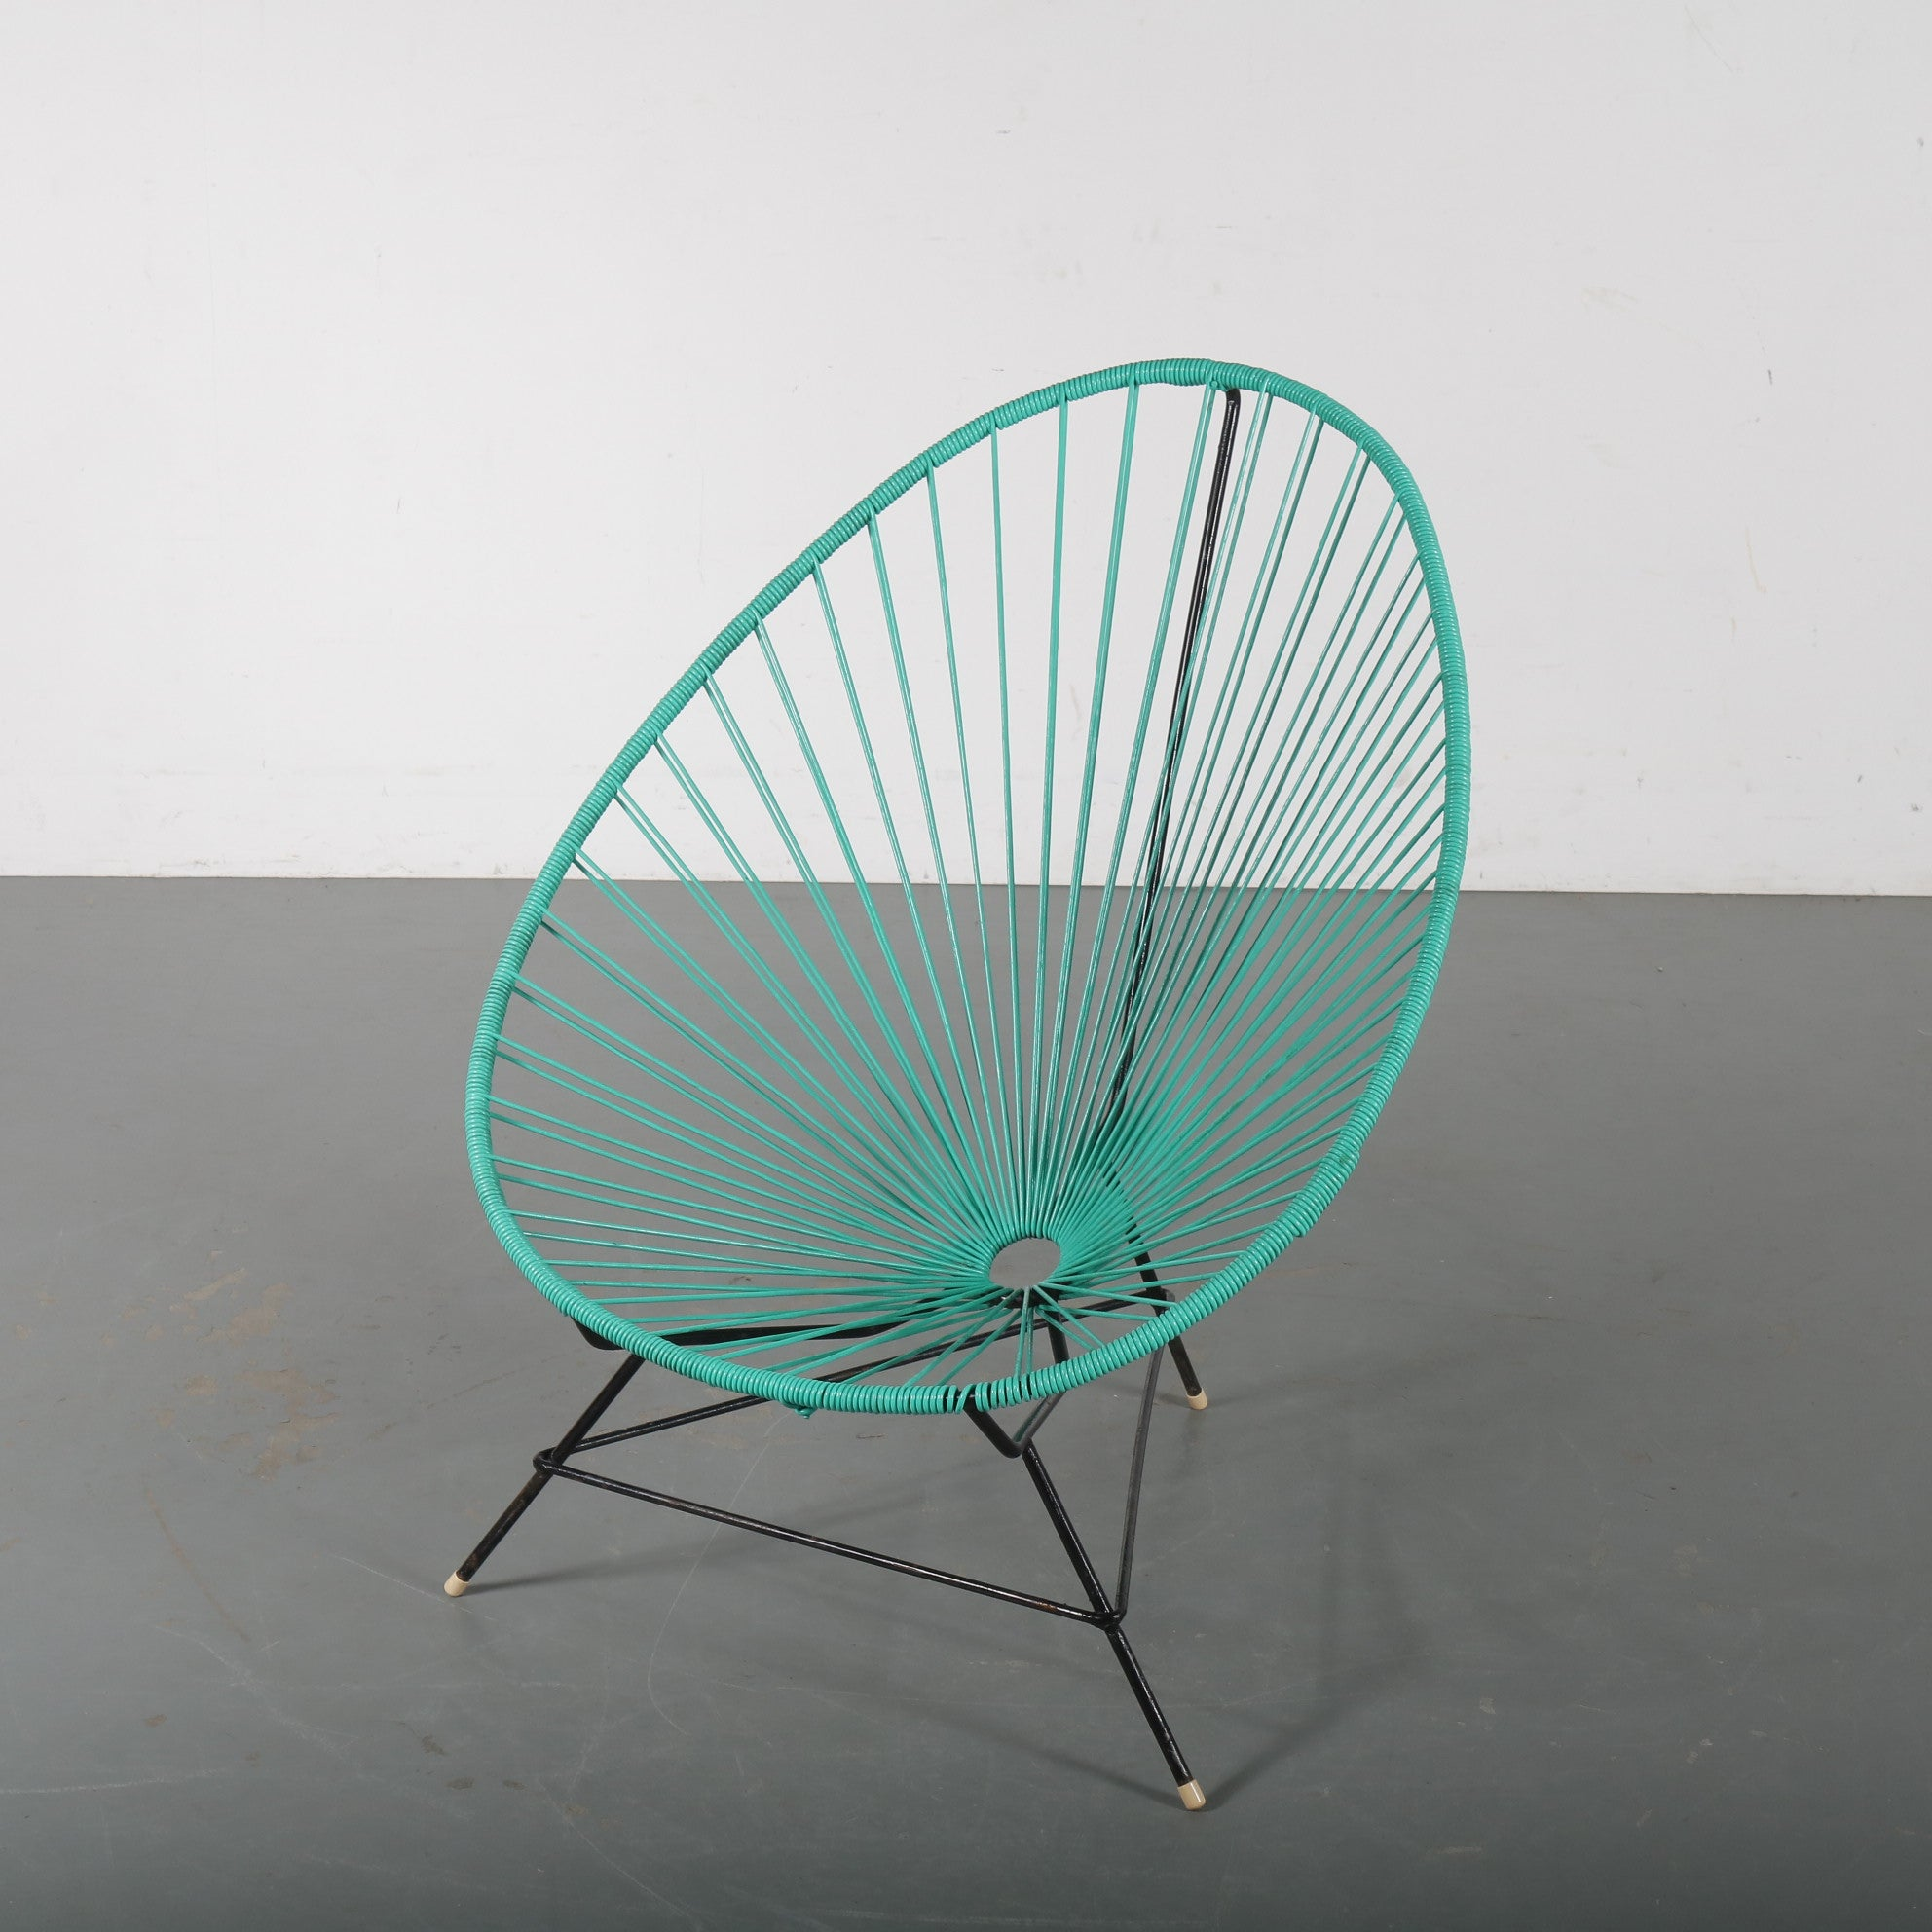 Tweedehands design 1950s Acapulco garden chair, made in Mexico